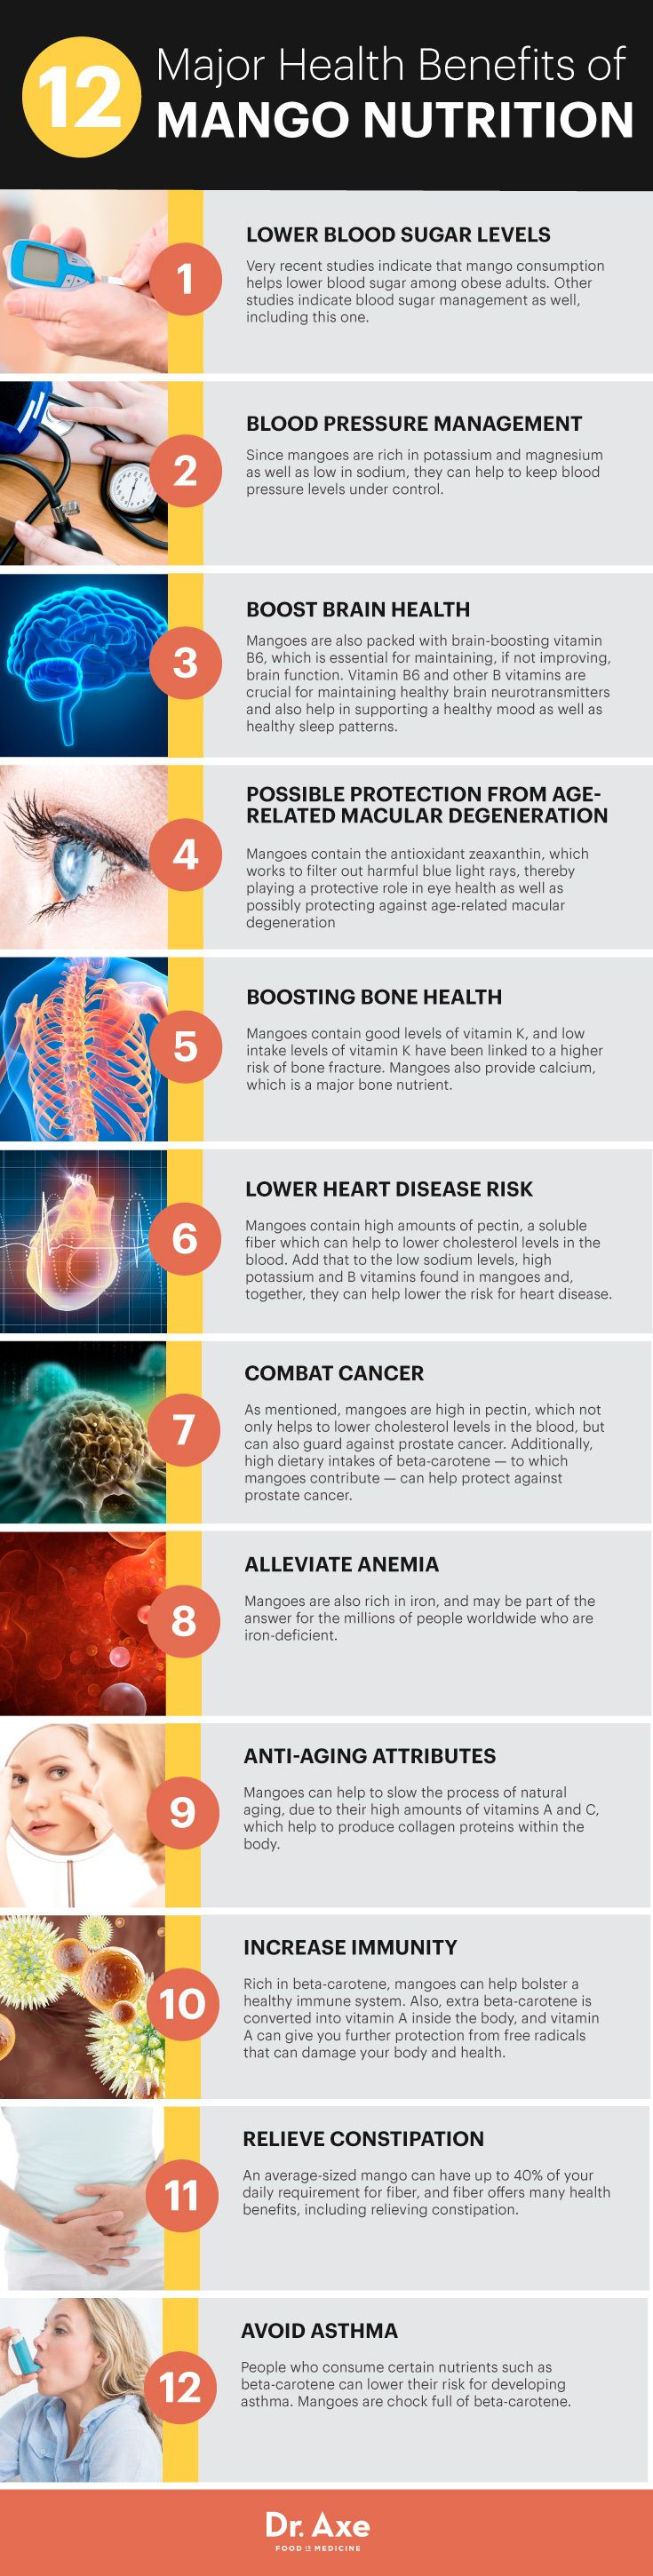 Mango benefits infographic - Dr. Axe http://www.draxe.com #health #holistic #natural